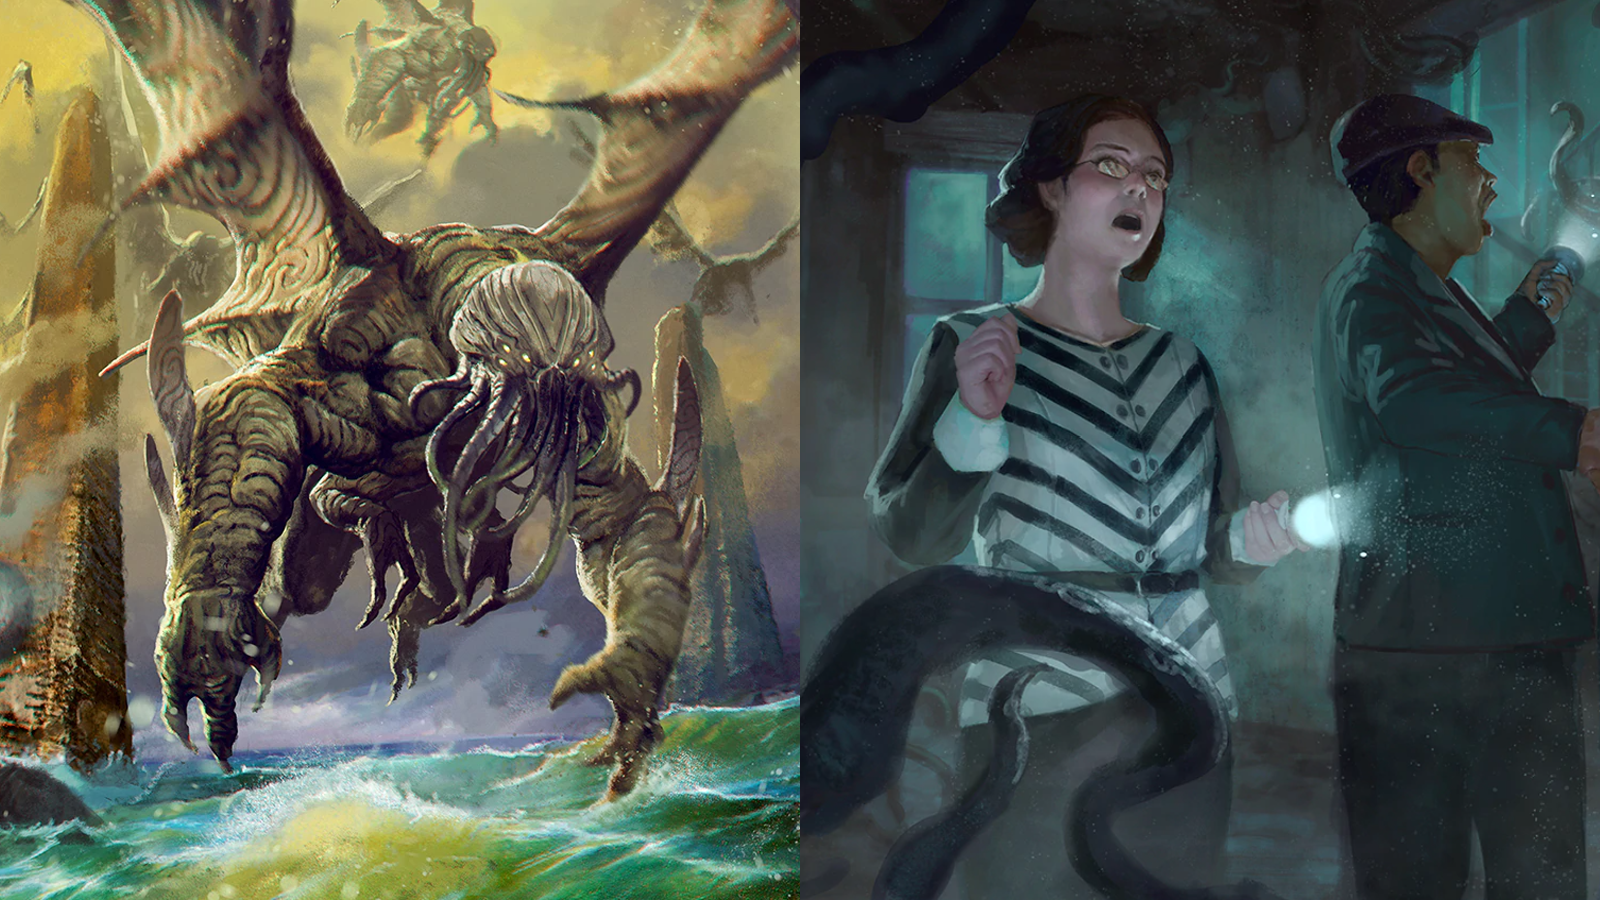 Call of Cthulhu RPG game art of Cthulhu and scared investigators